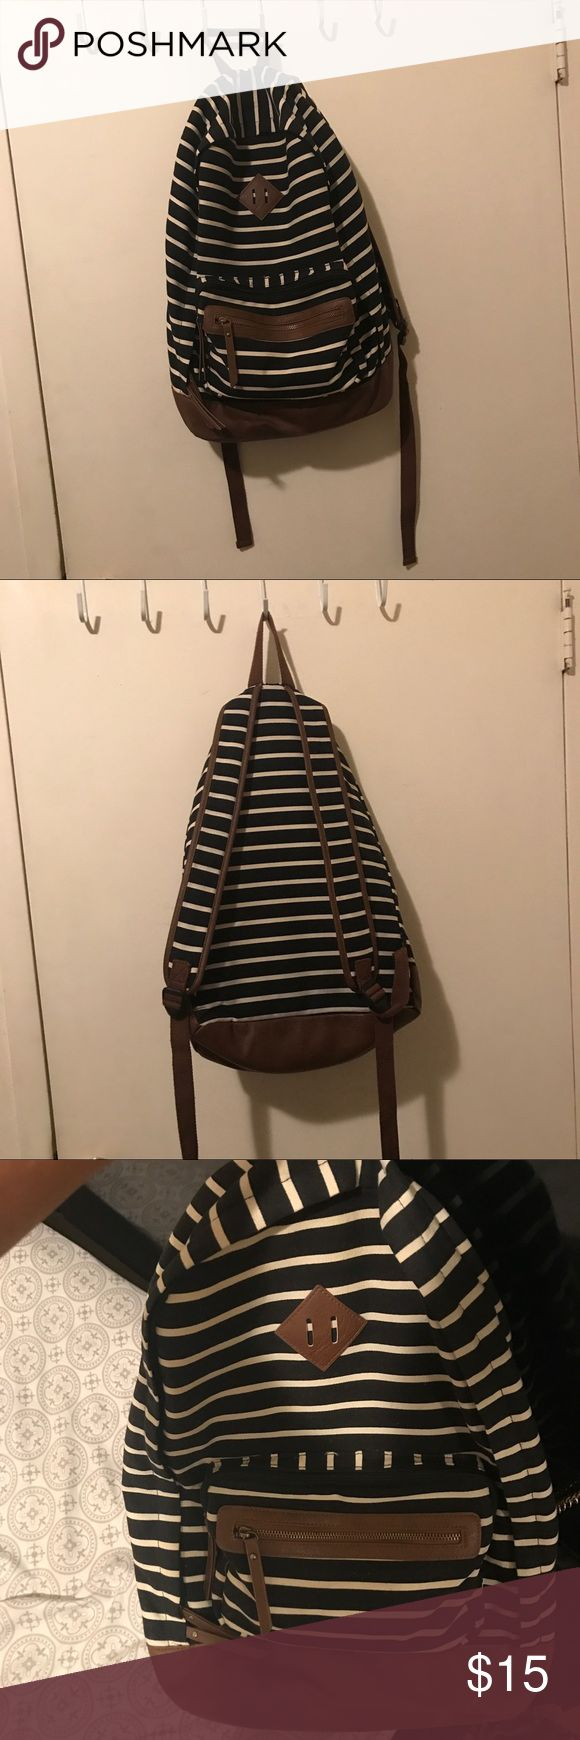 Striped Backpack Black and cream large striped backpack, perfect for school! Mossimo Supply Co. Bags Backpacks